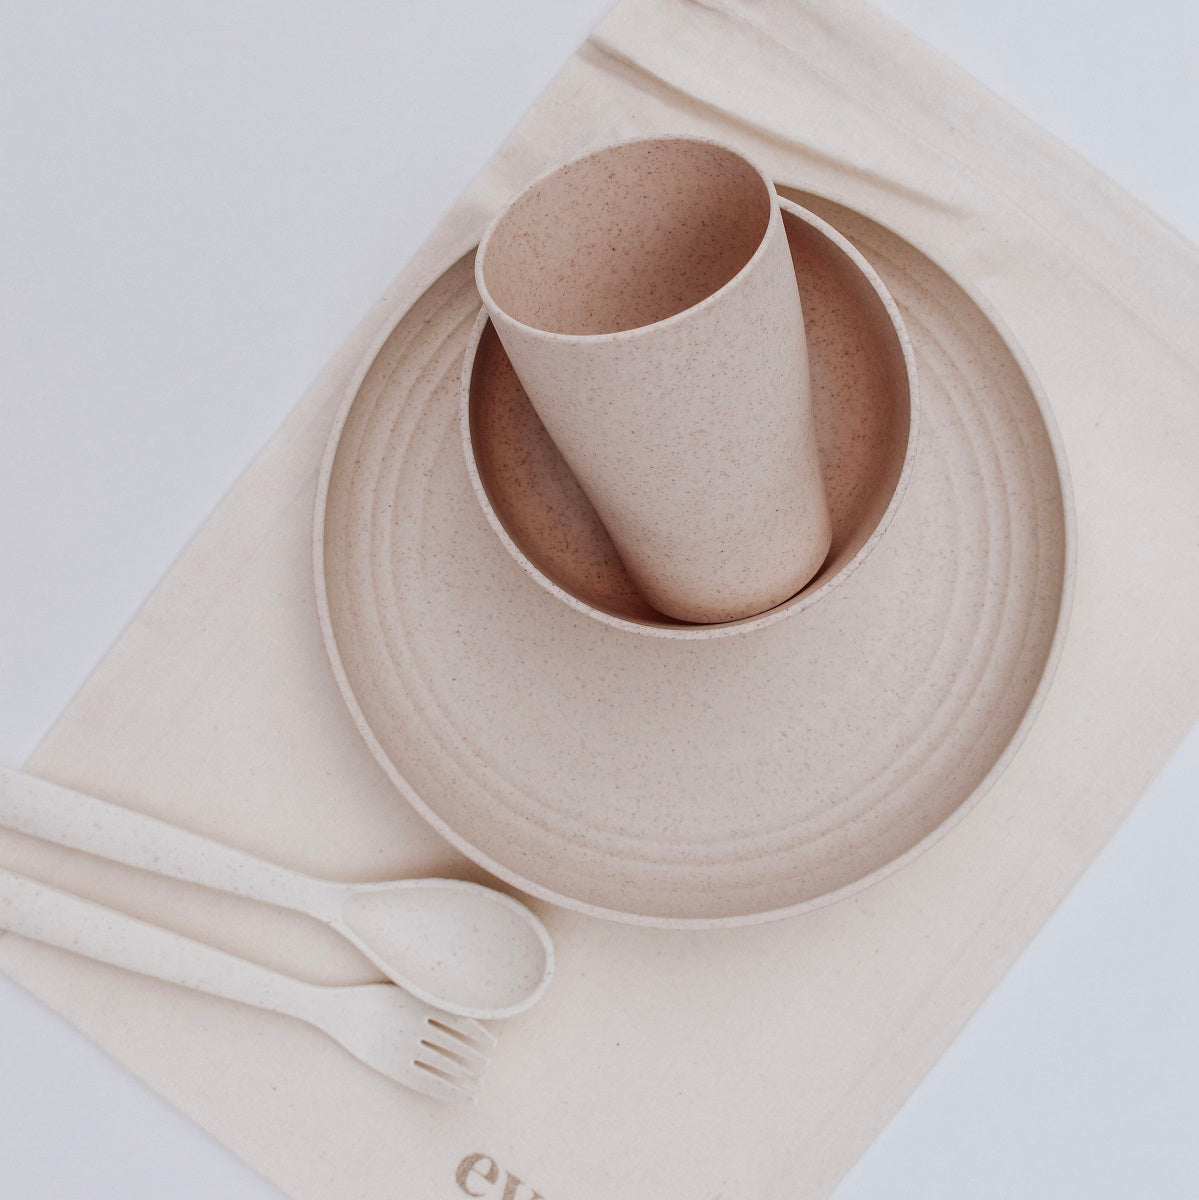 Weatstraw Dinner Set - Almond